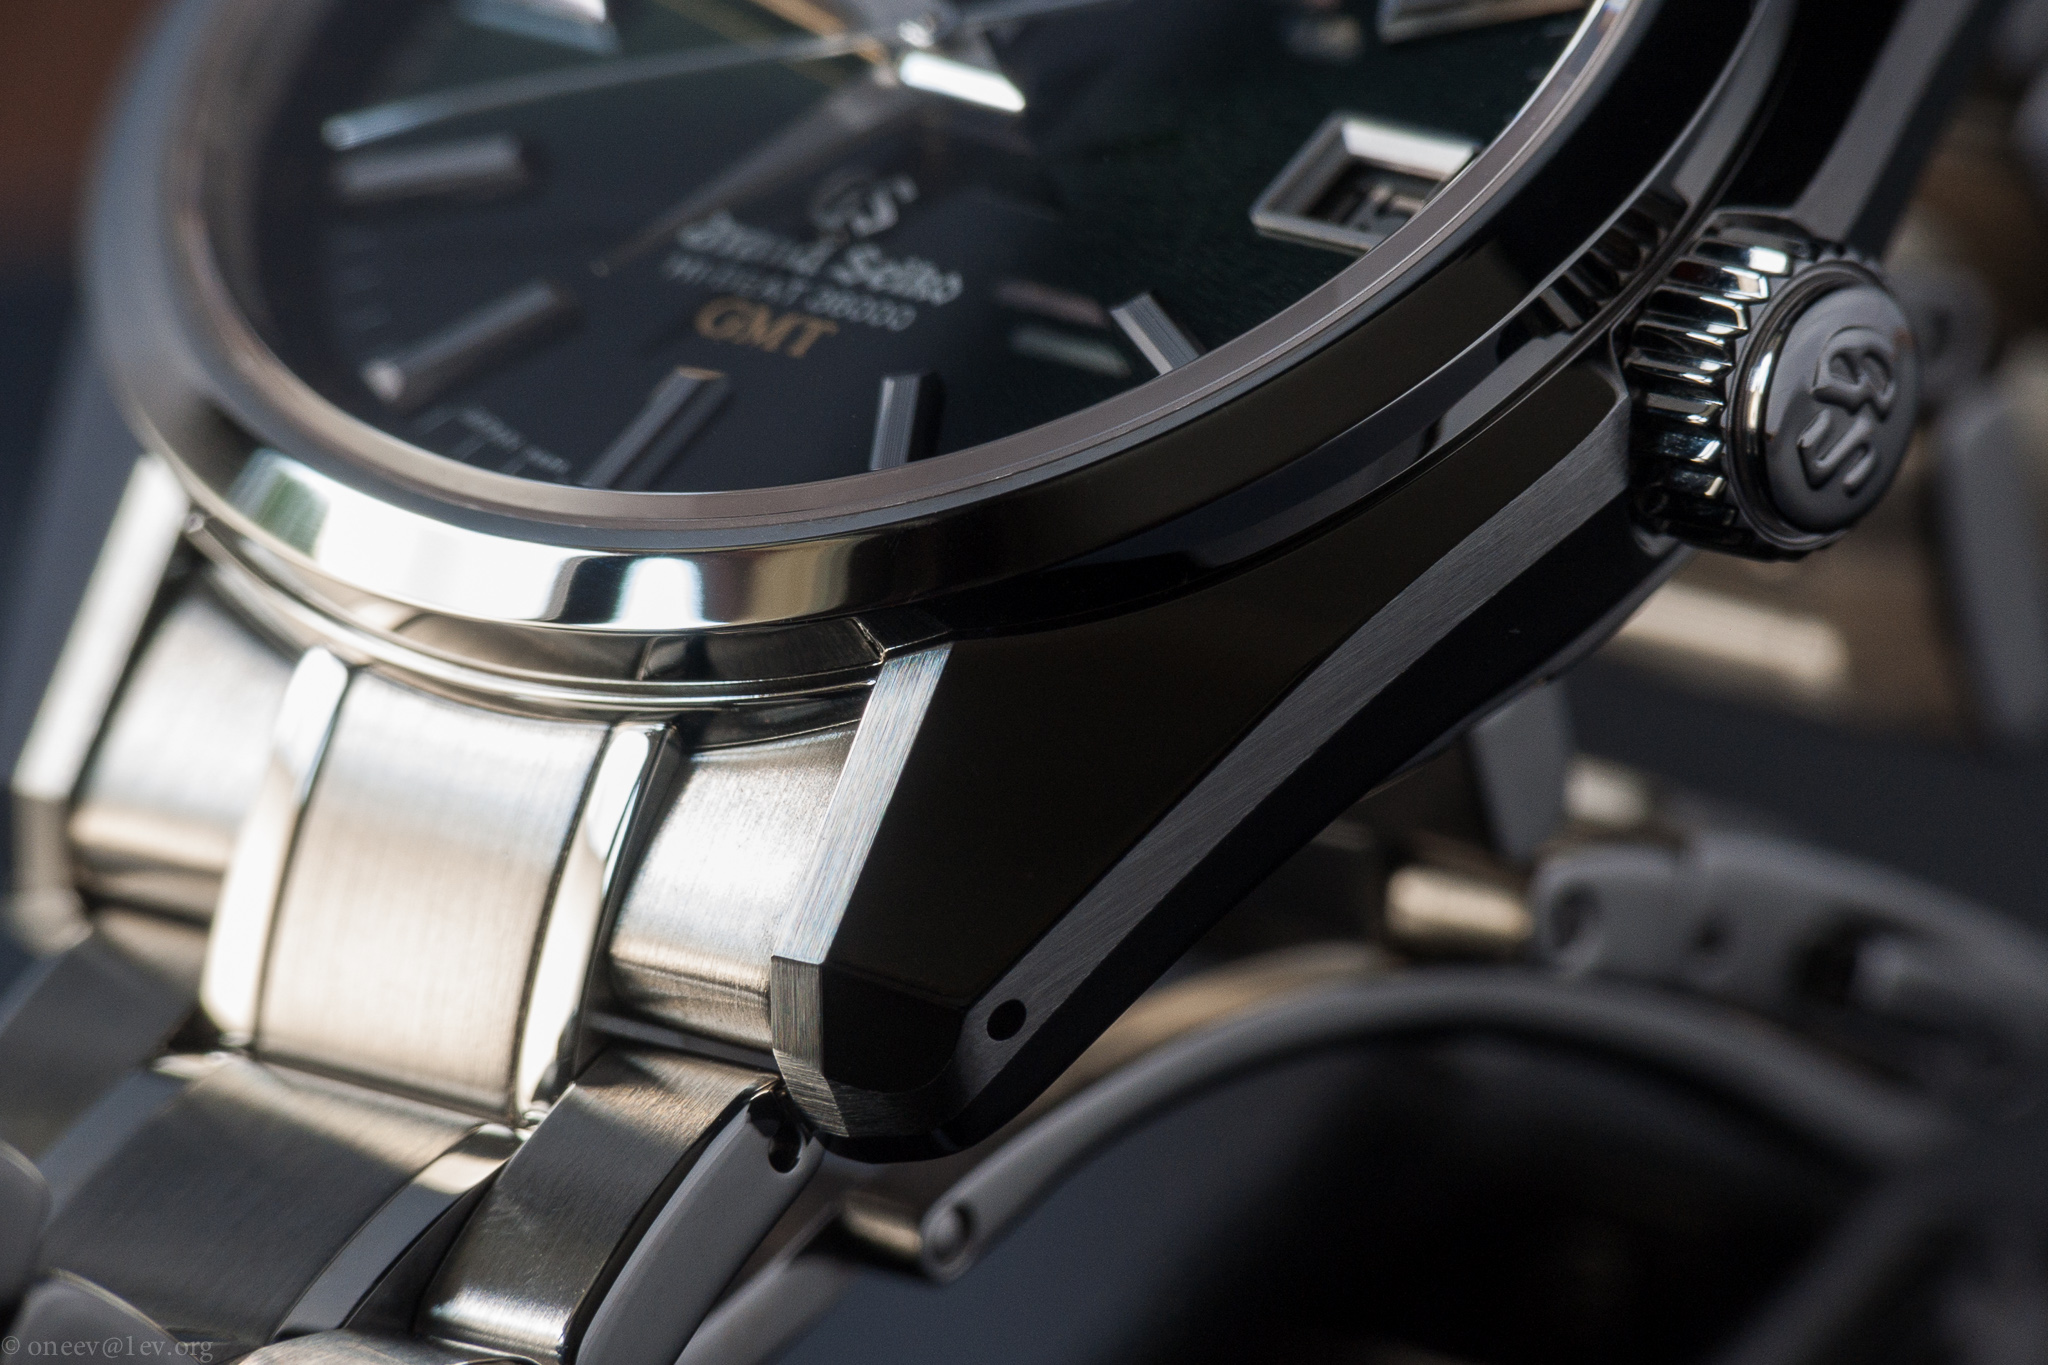 Revue illustrée de la Grand Seiko GMT Hi-Beat SBGJ005 20140915-CRW_2980